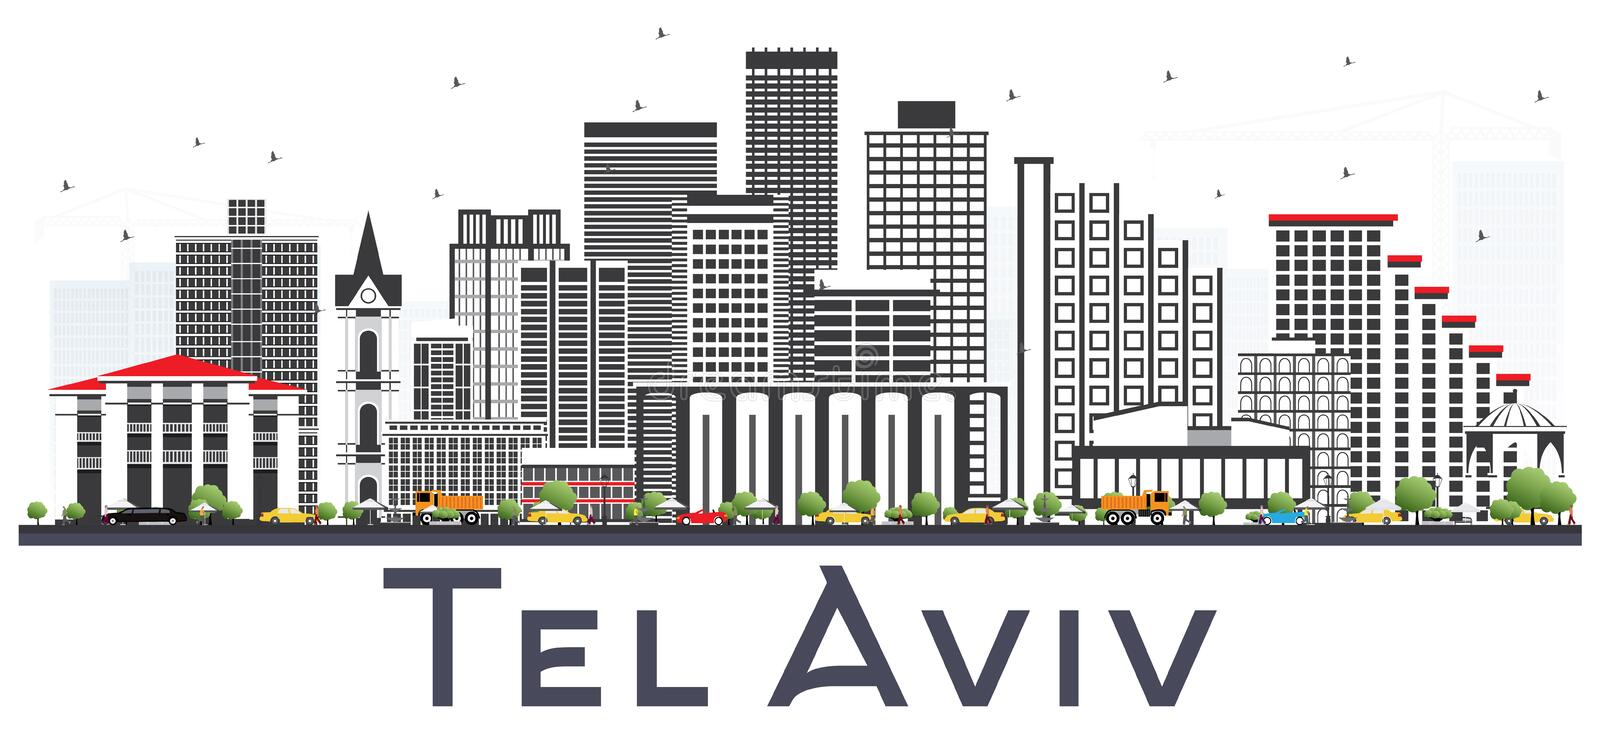 Teléfono Aviv Israel City Skyline con Gray Buildings Isolated en Whi ilustración del vector